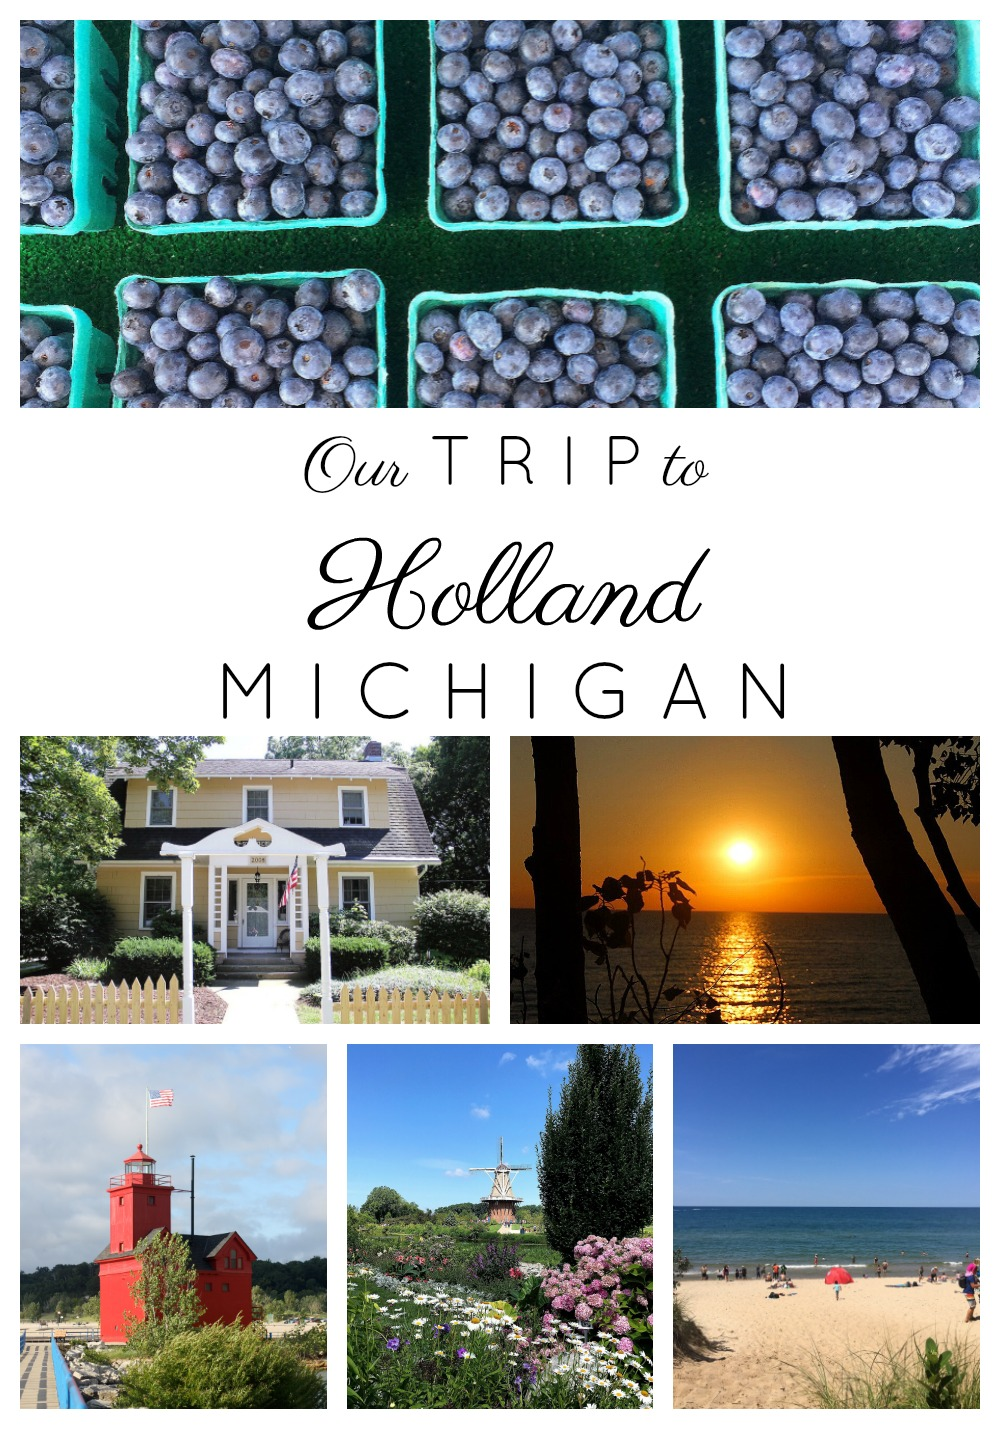 Our Trip to Holland Michigan